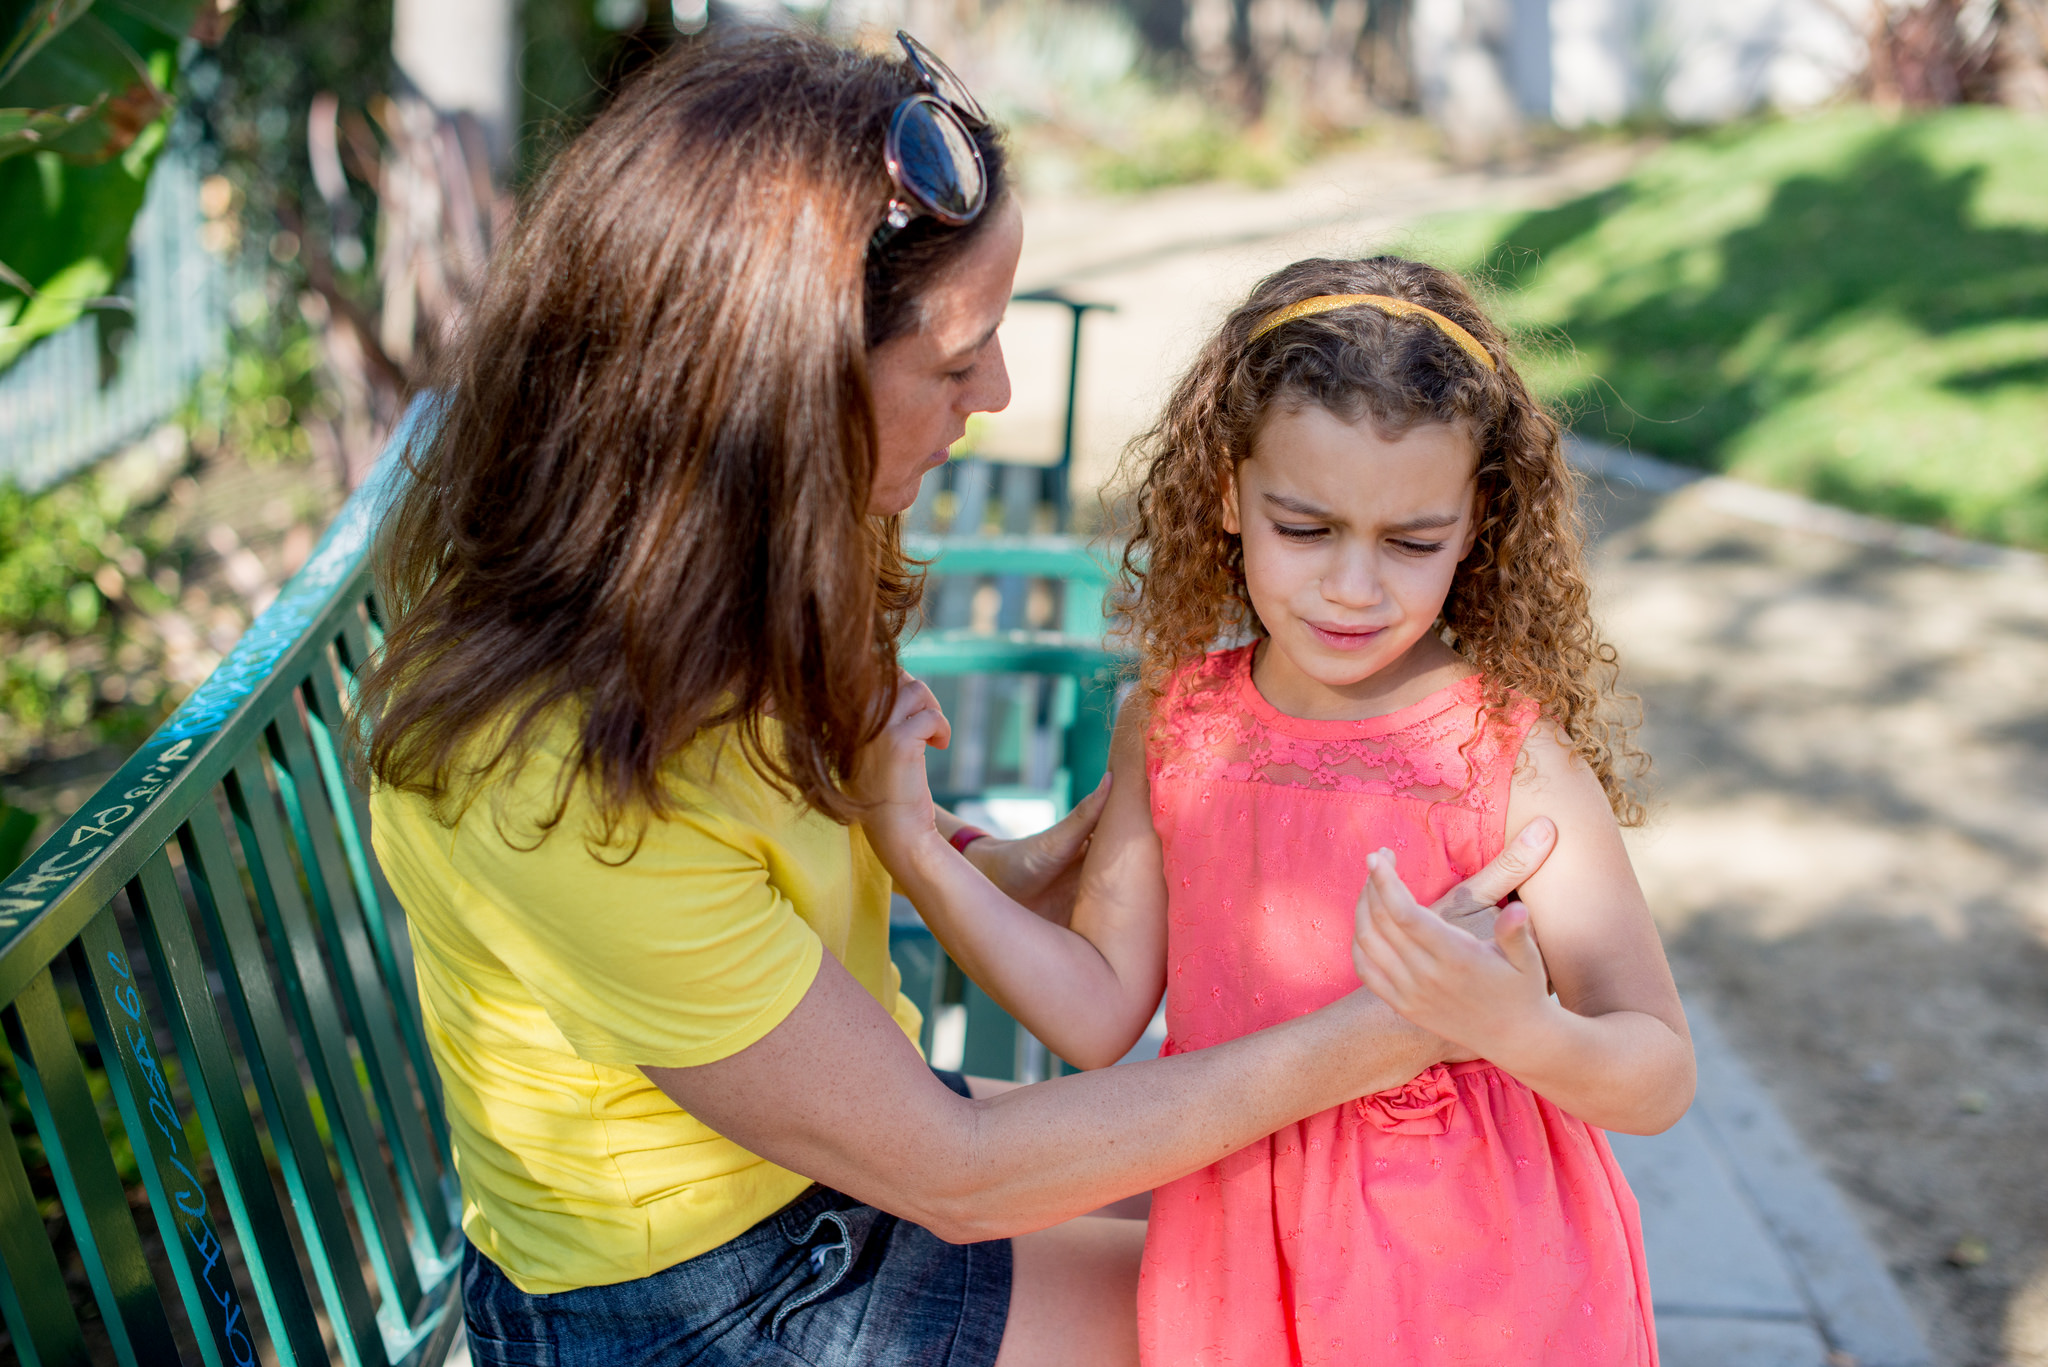 First 5 LA's 5 Ways to Help Children Feel Safe After National Tragedies